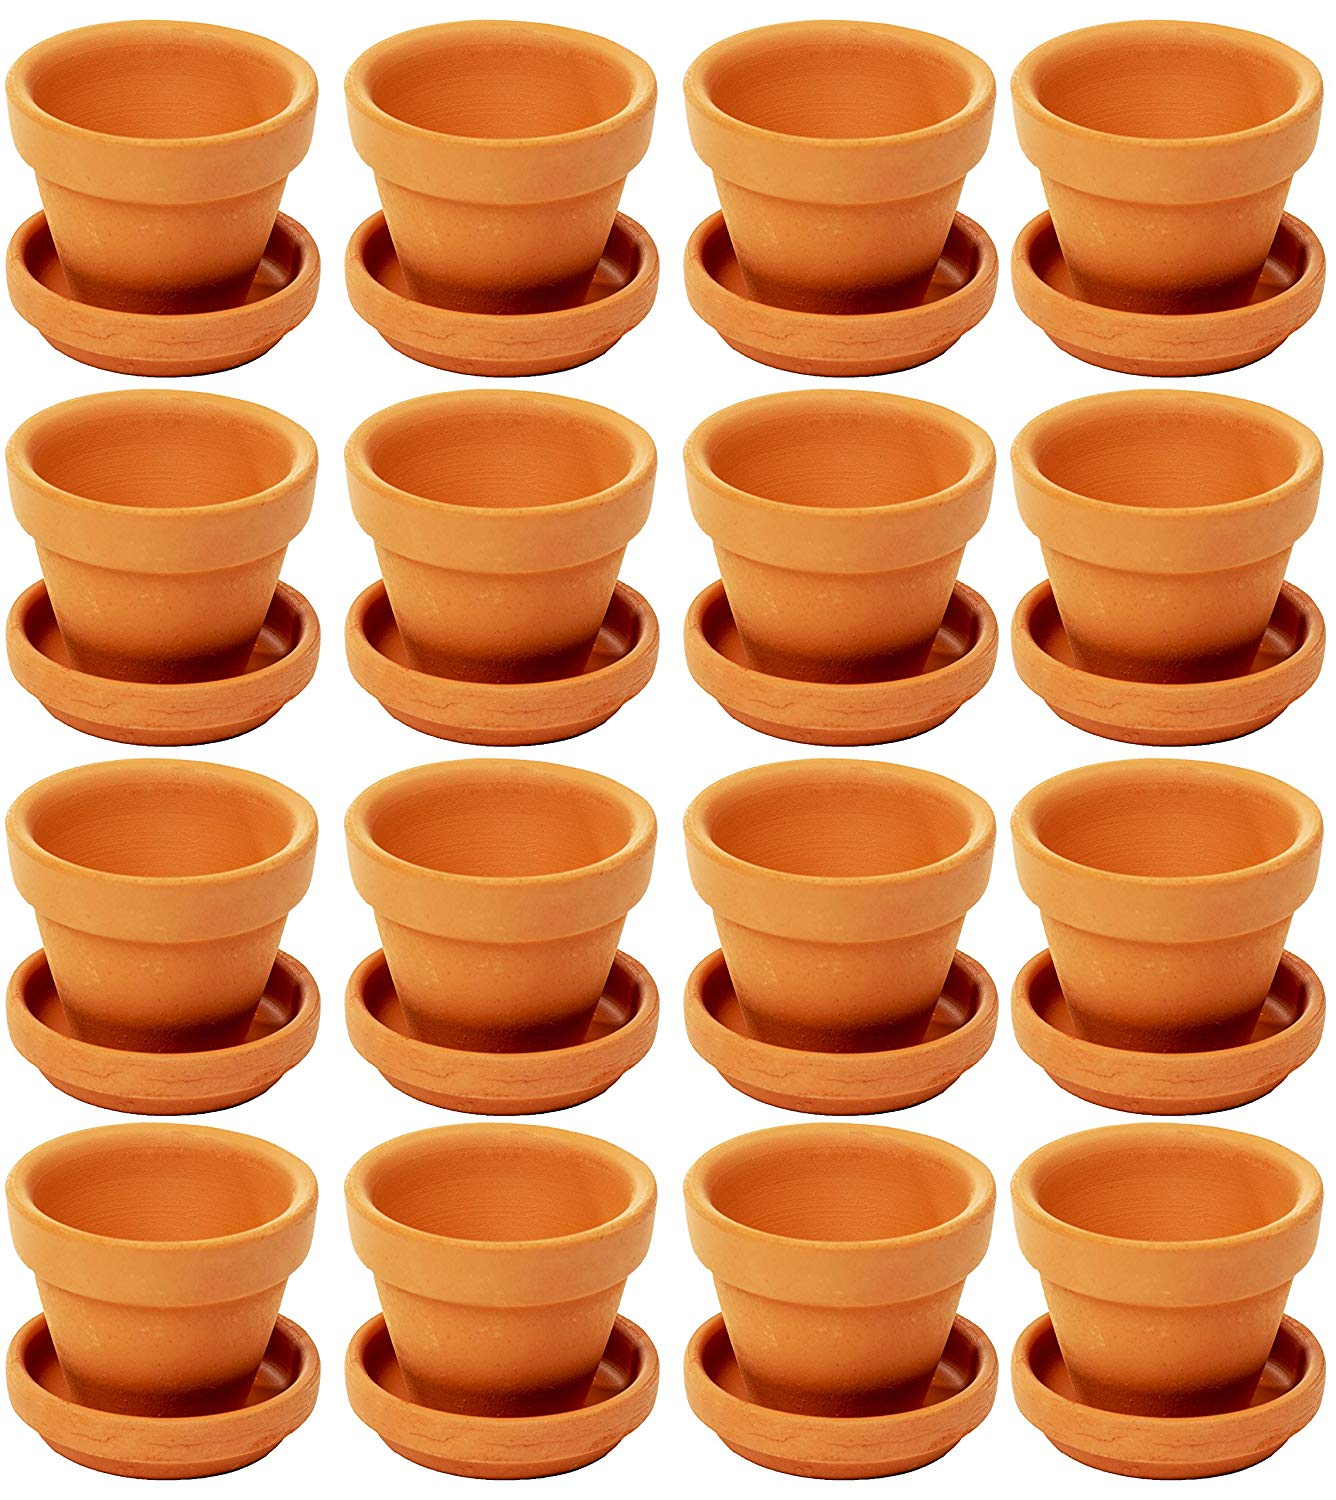 Mini Terra Cotta Pots with Saucer- 16-Pack Clay Flower Pots with Saucers, Mini Flower Pot Planters for Indoor, Outdoor Plant, Succulent Display, Brown - 2 x 1.5 inches